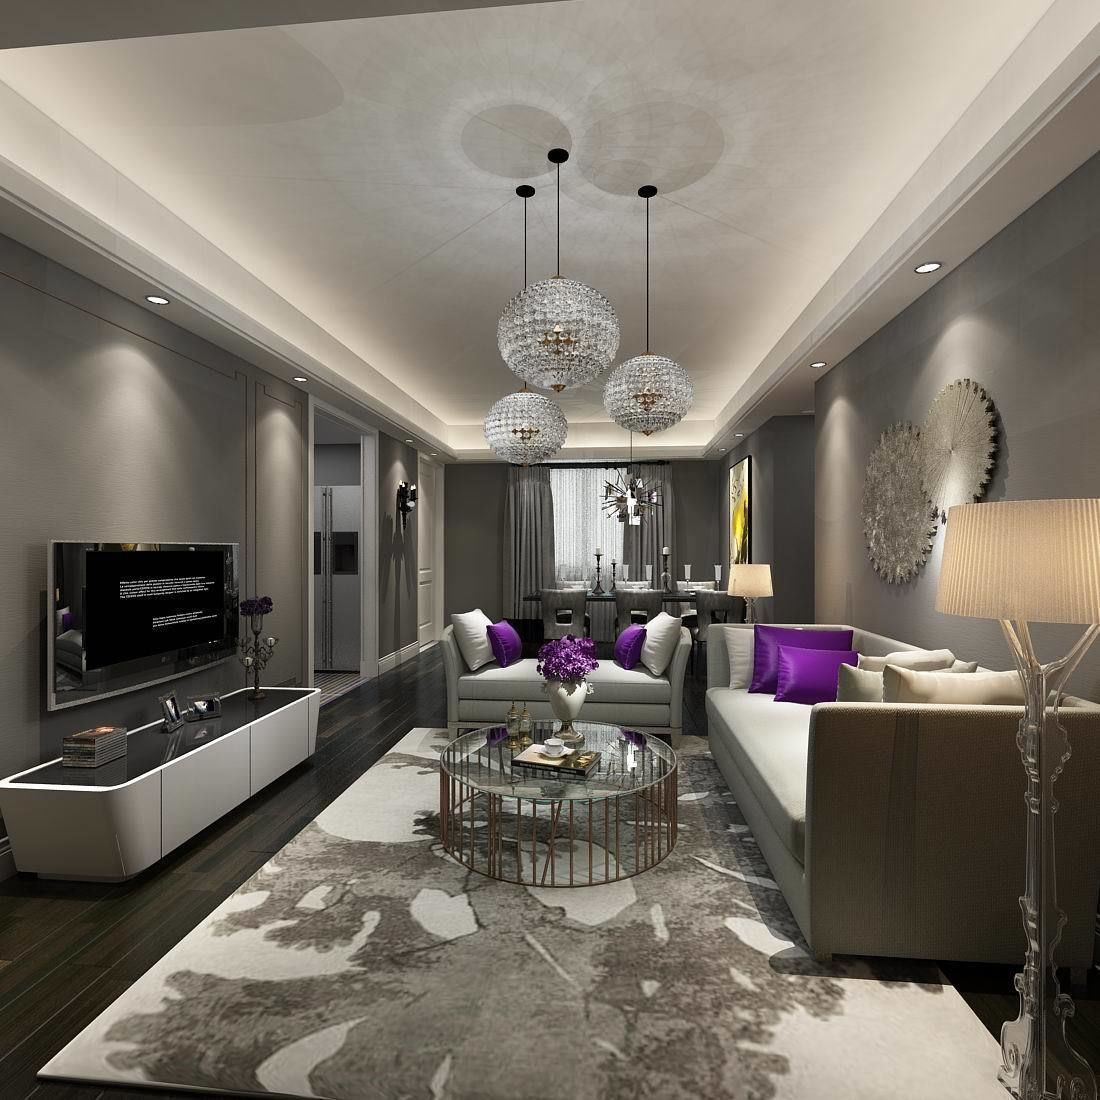 3d Interior Model Designed By Expldin Available In Autodesk